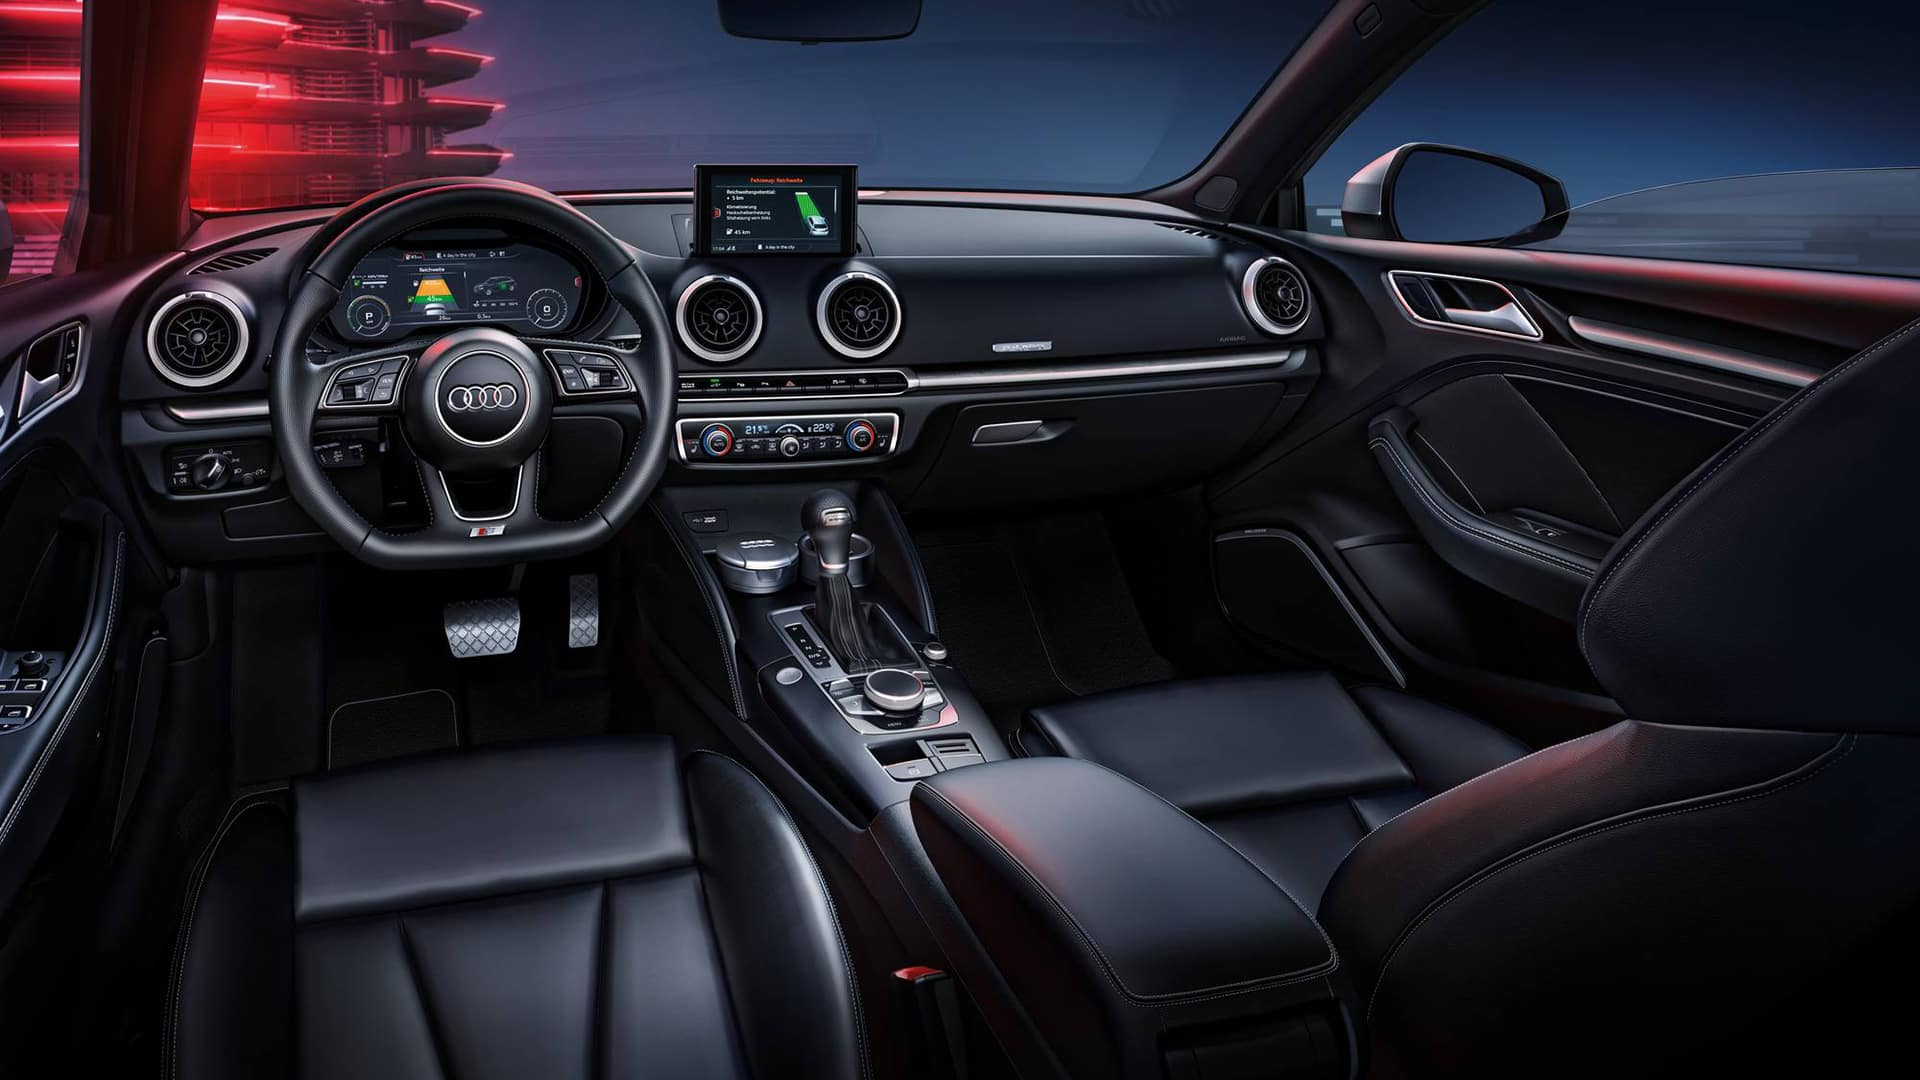 L'Audi virtual cockpit dell'Audi A3 Sportback 40 e-tron